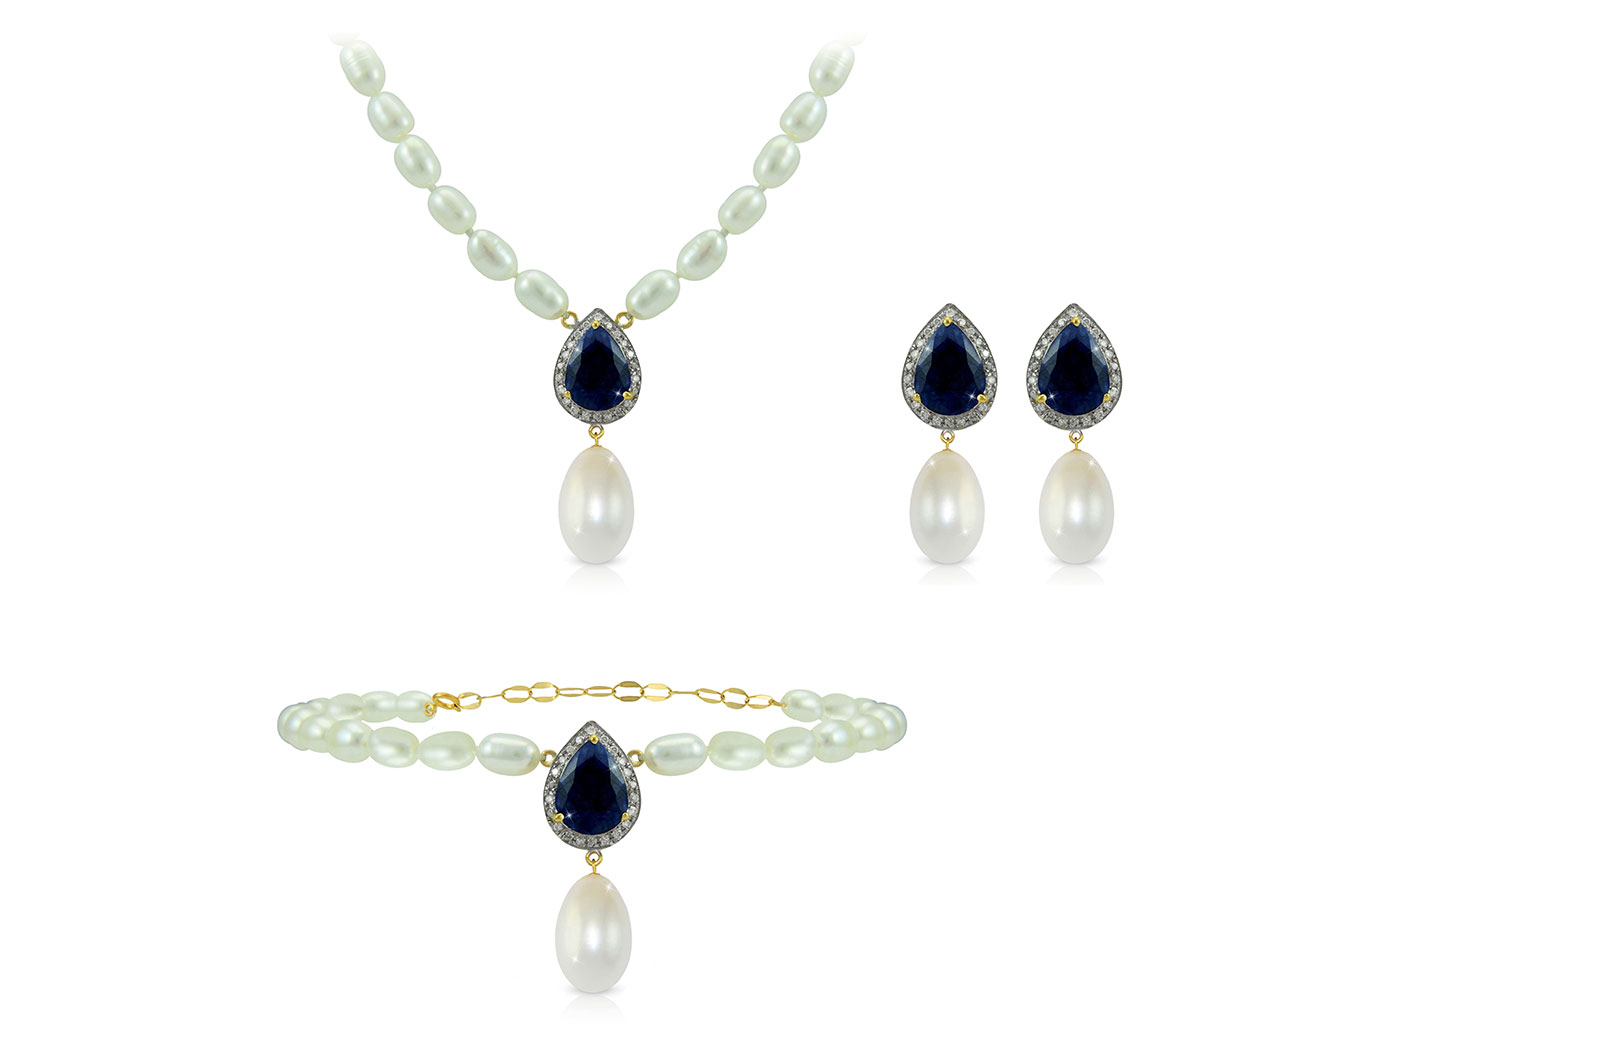 Vera Perla 18K Gold 0.48ct Diamonds, Royal Indian Sapphire and 13mm Pearl 3 pcs set